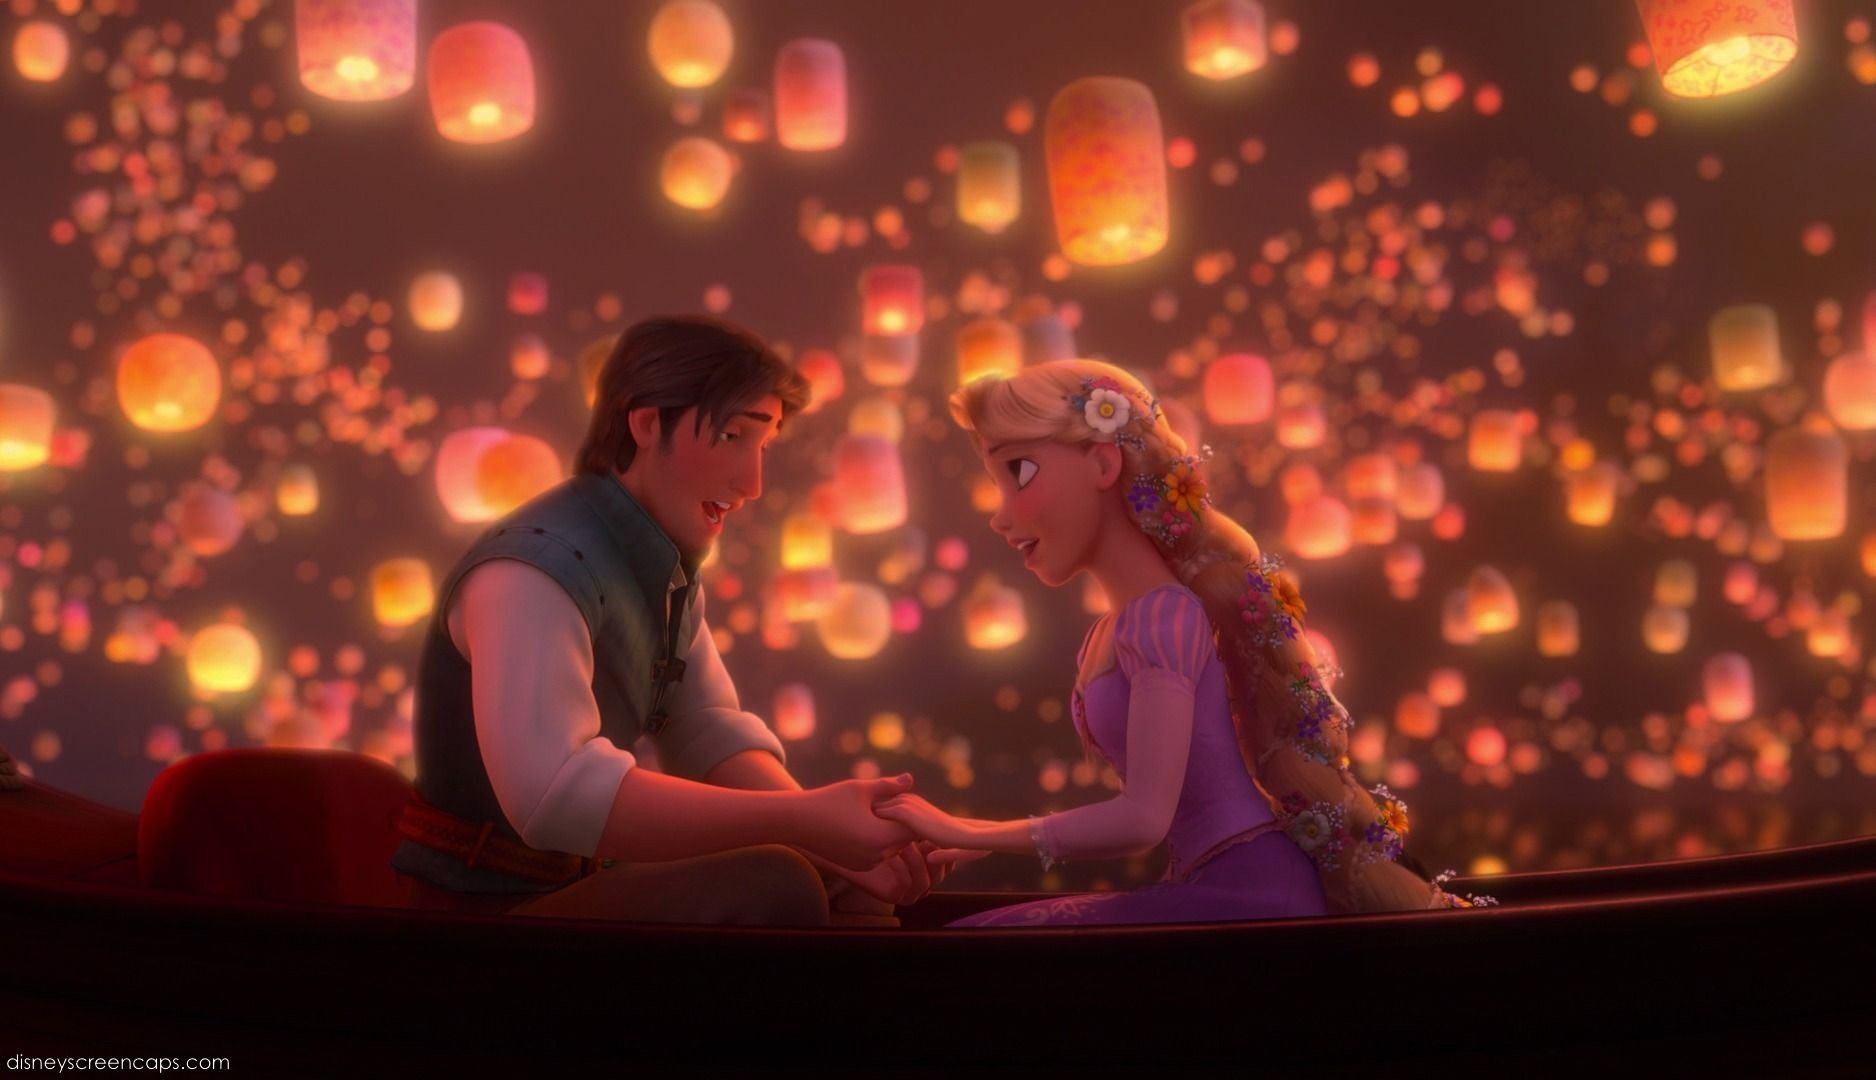 Tangled Wallpapers Hd Romantic Posted By Ethan Simpson